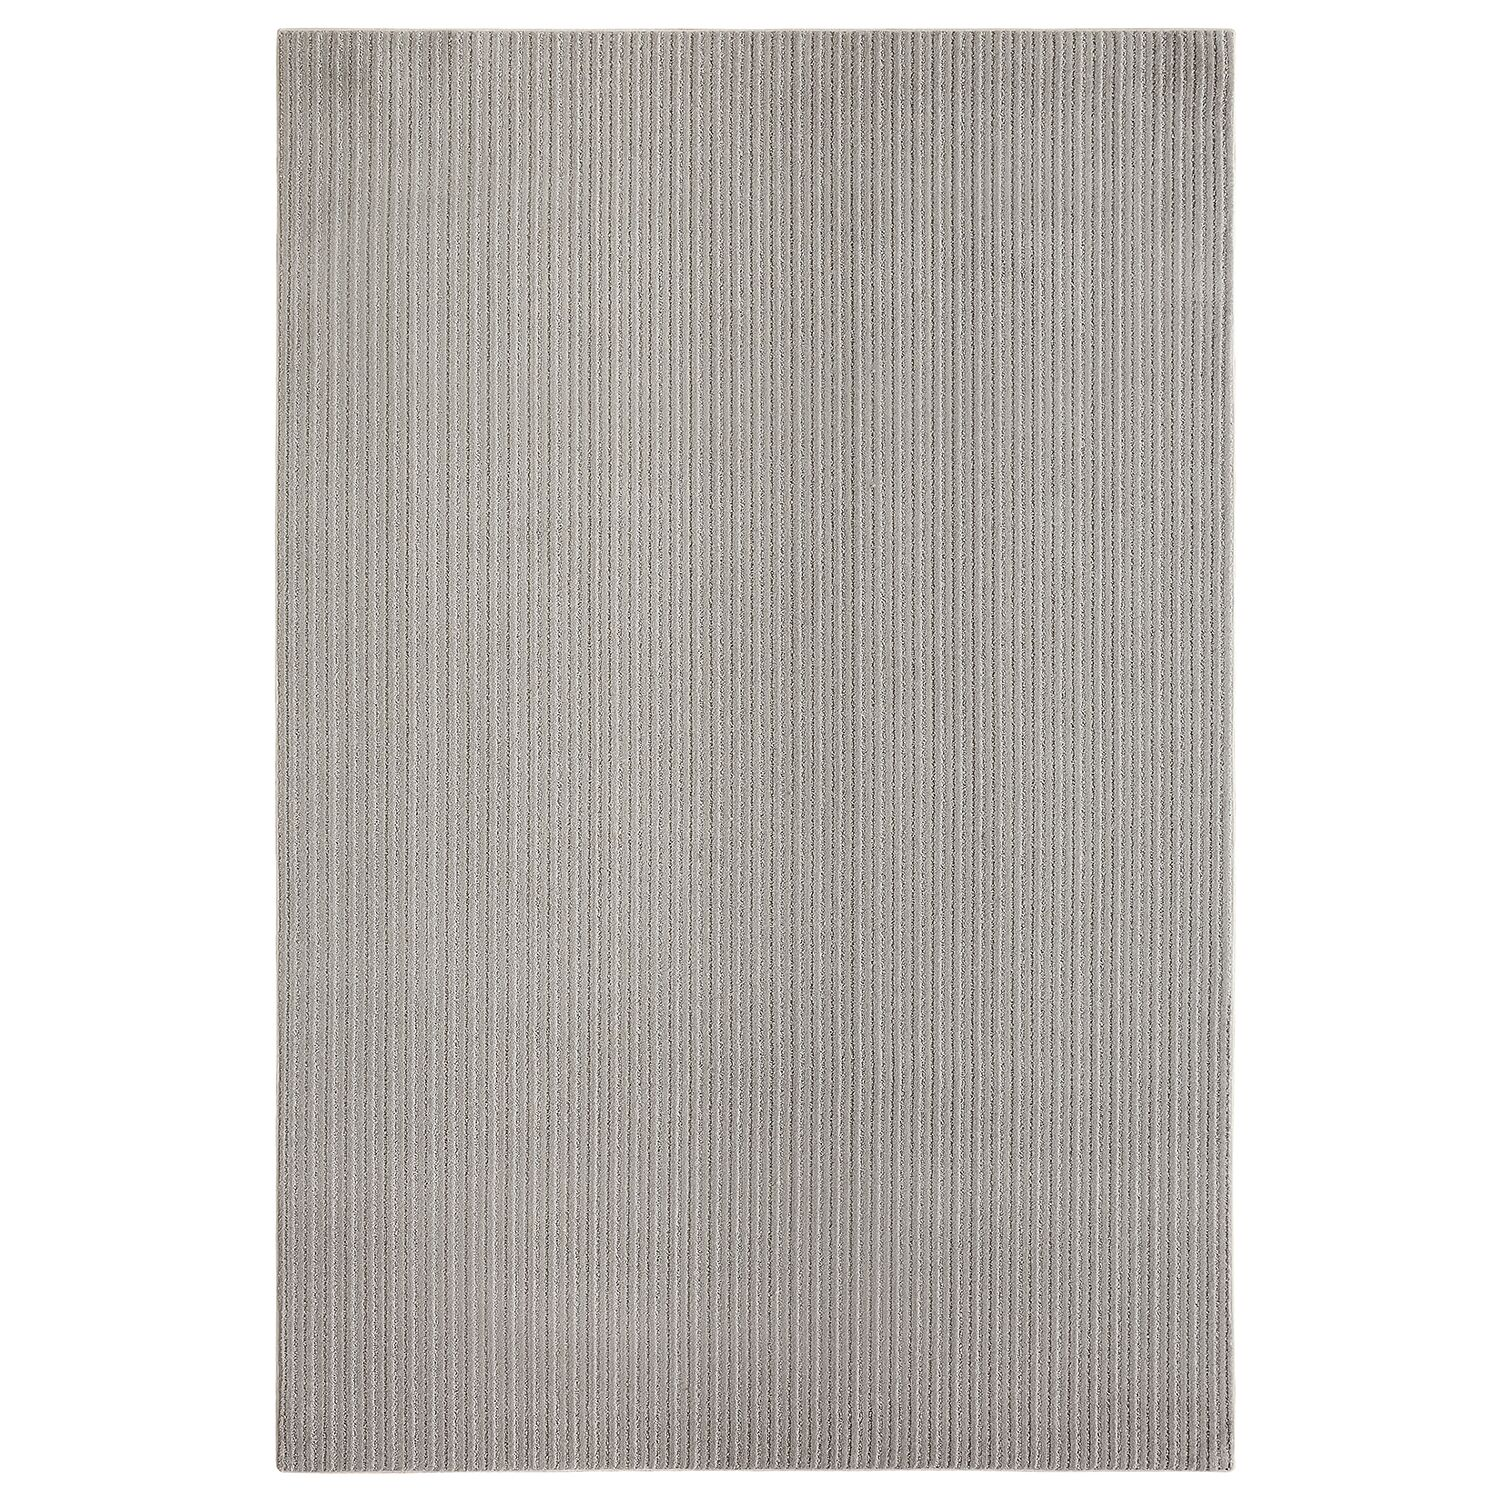 Bettie Hand-Tufted Fog Area Rug Rug Size: Rectangle 9' x 12'